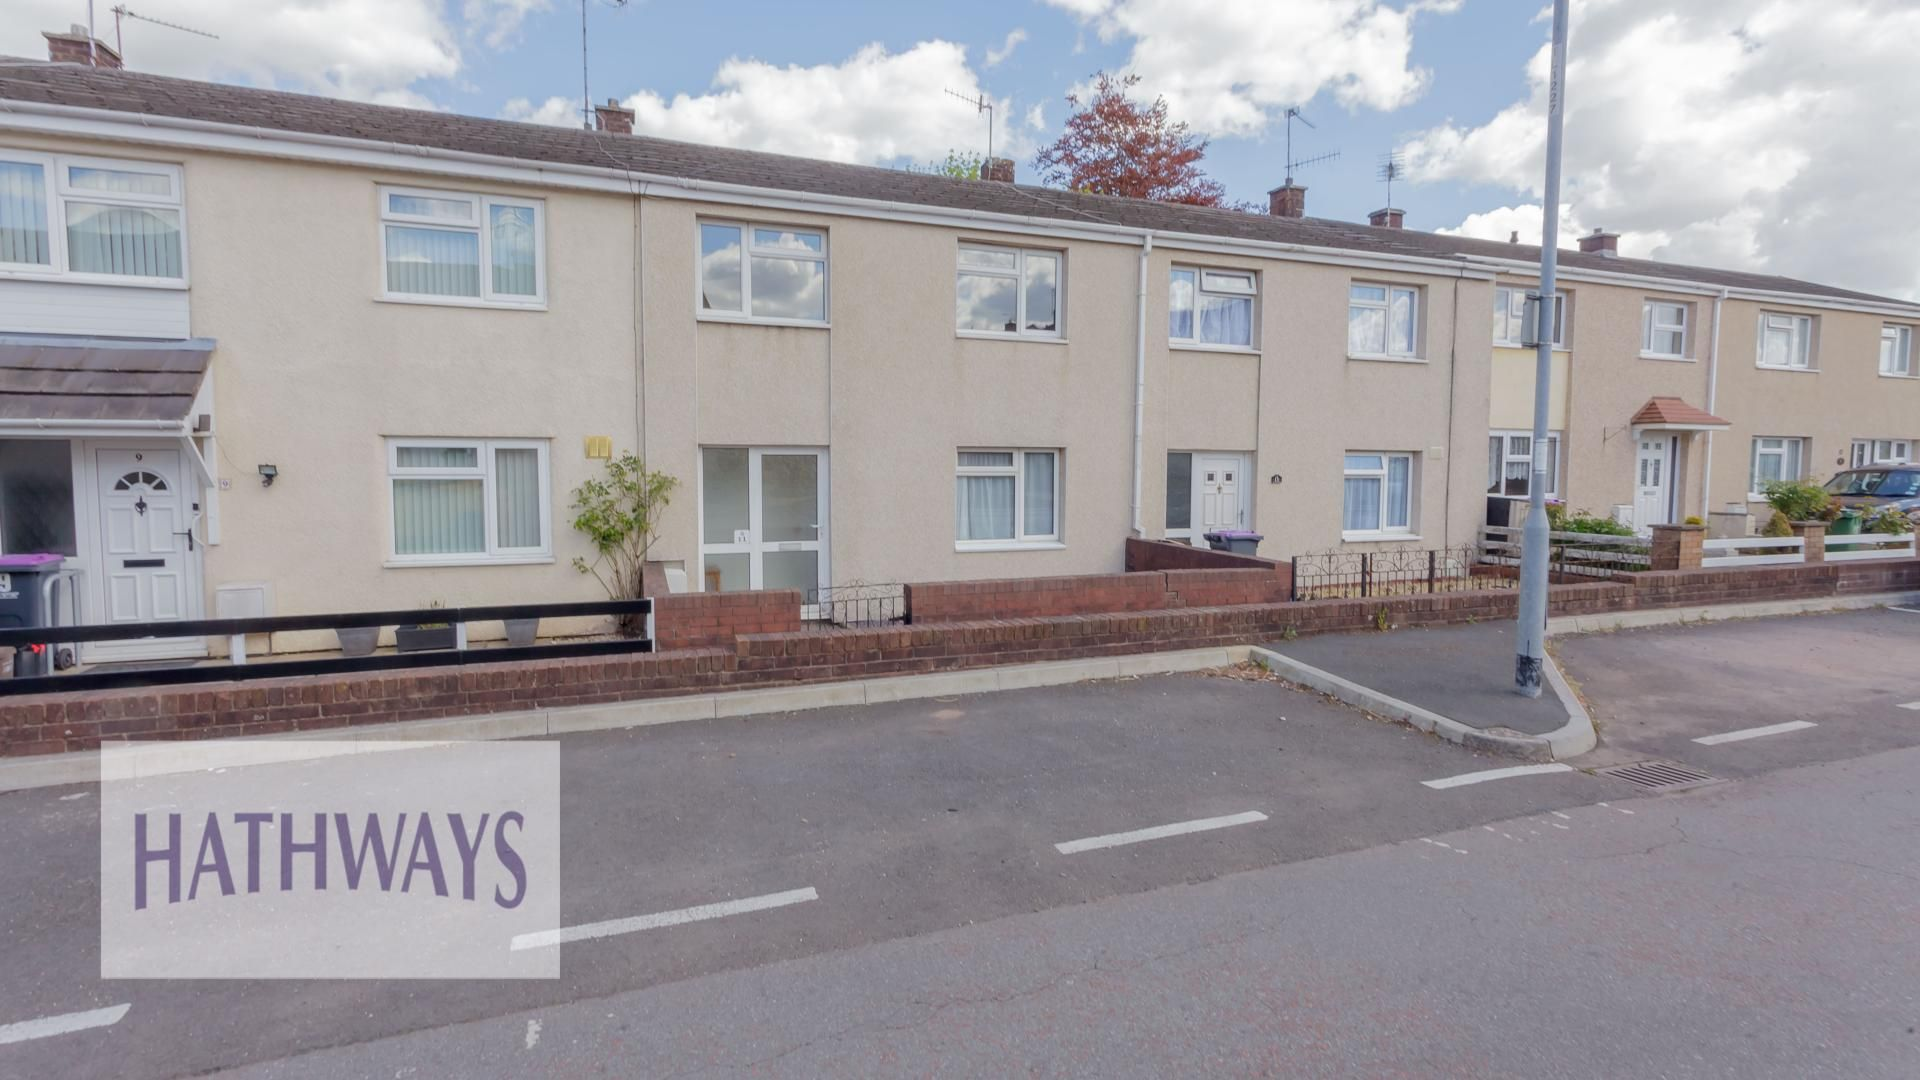 3 bed house for sale in St Arvans Road,, NP44